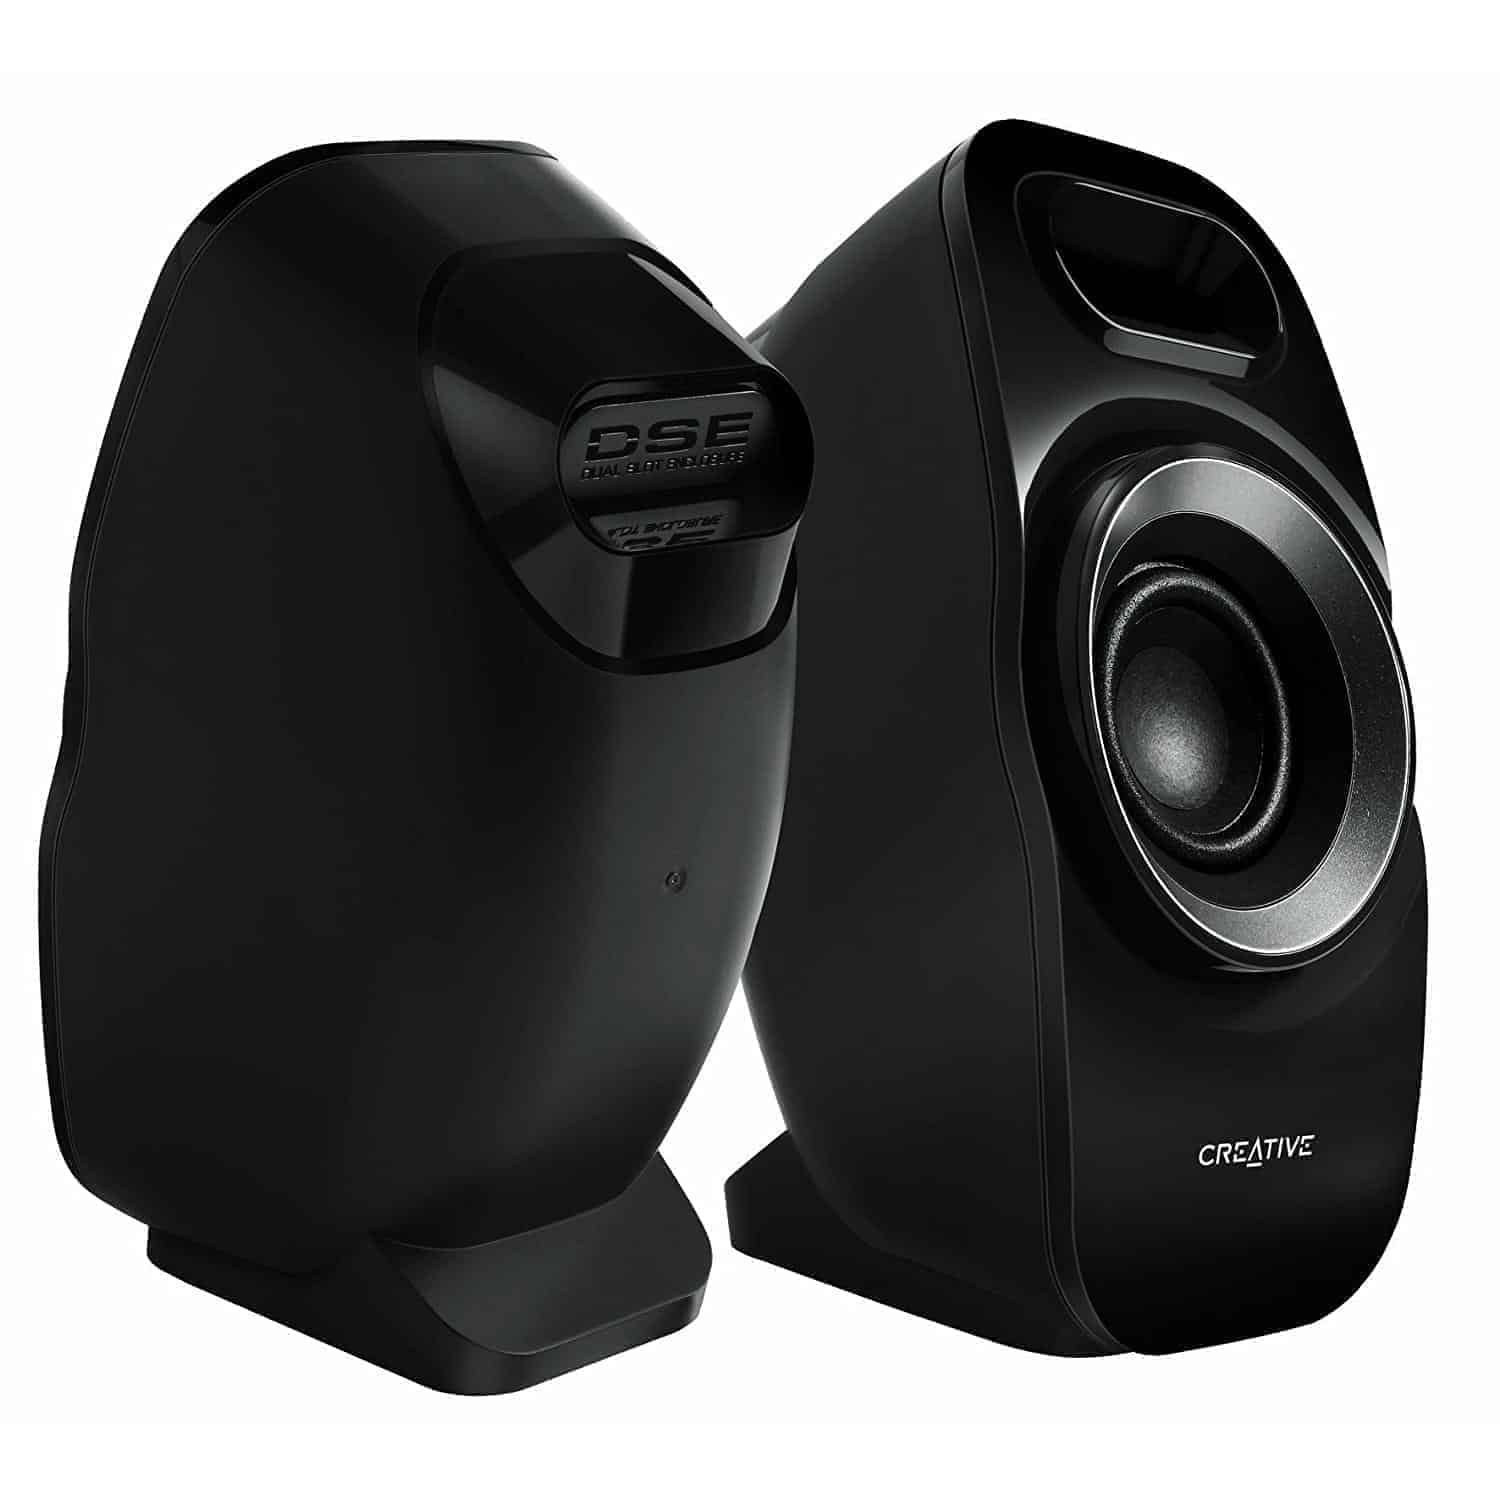 Creative Inspire T-6300 5.1 Multimedia Speaker System , featuring SBX Pro Studio technology. Easy to install, it replaces , Creative Sound Blaster X-Fi 5.1 Pro: This little external sound card is ... to send digital audio to a compatible surround-sound amp and a drive, Satyamfilm.com, kartmy.com. kartw.com. kartnp.com, Video Editing Card Video Mixing card